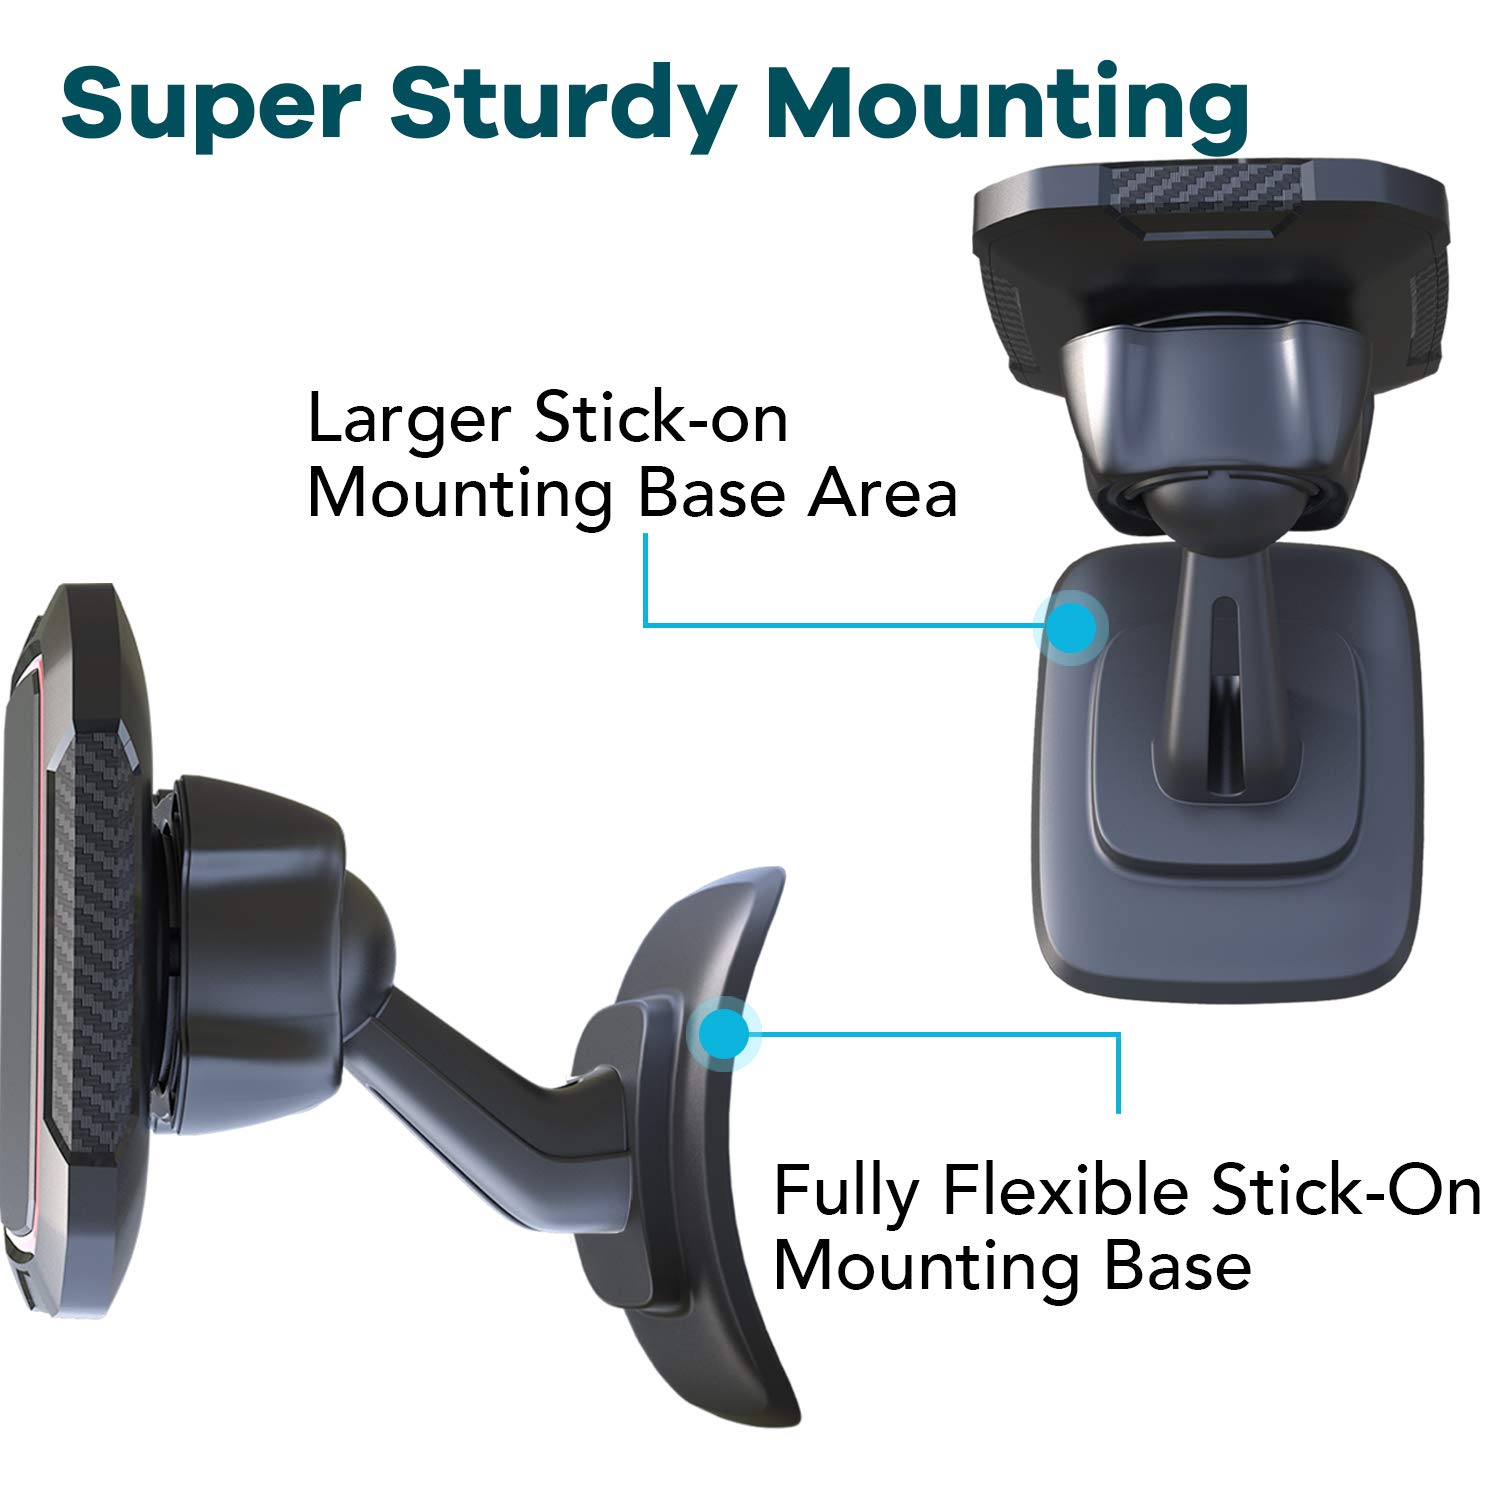 Powered by 6 Strong Magnets Magnetic Phone Car Mount Cell Phone Holder for Car by OQTIQ Super Sturdy Magnetic Dash Car Phone Mount